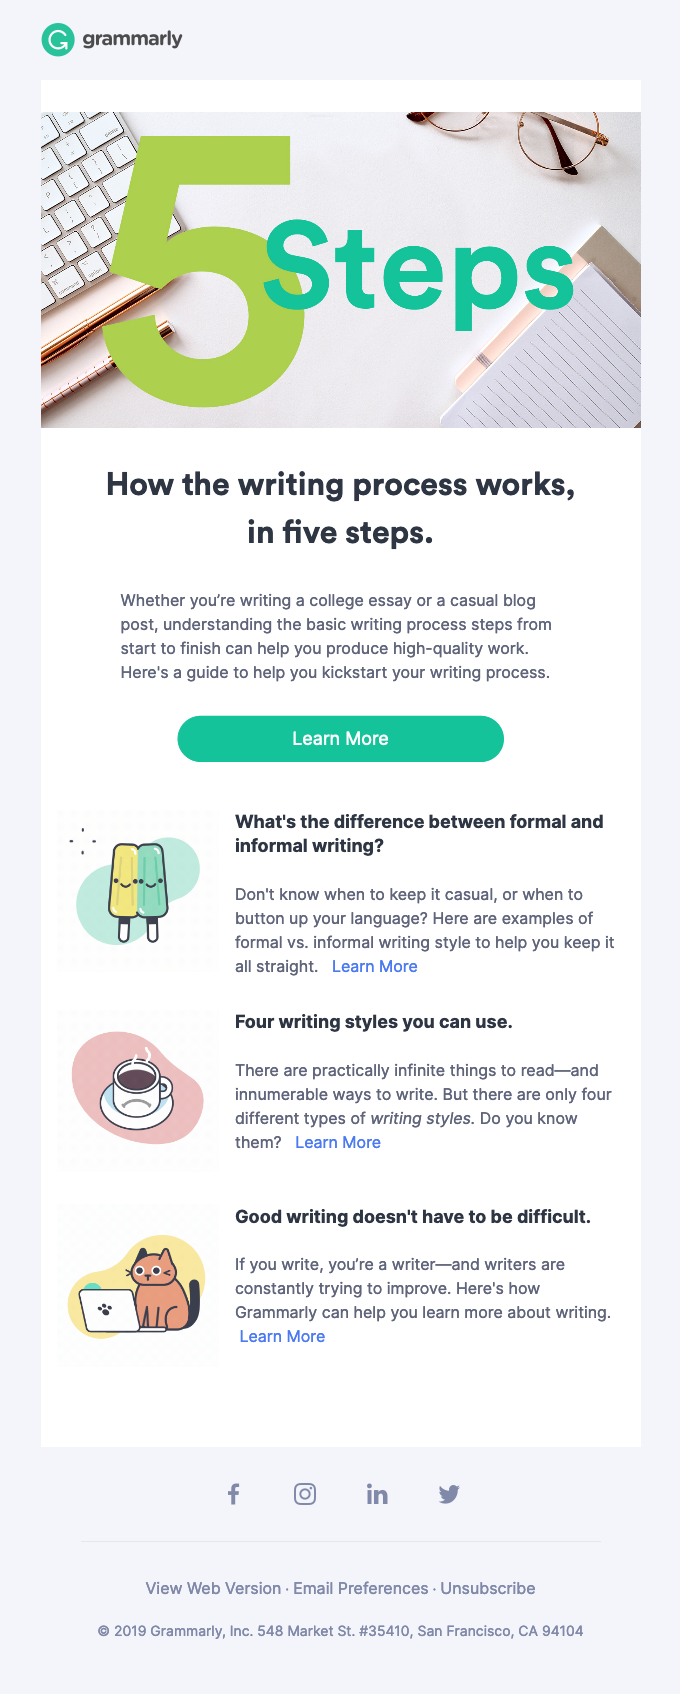 5 steps of the writing process you can master